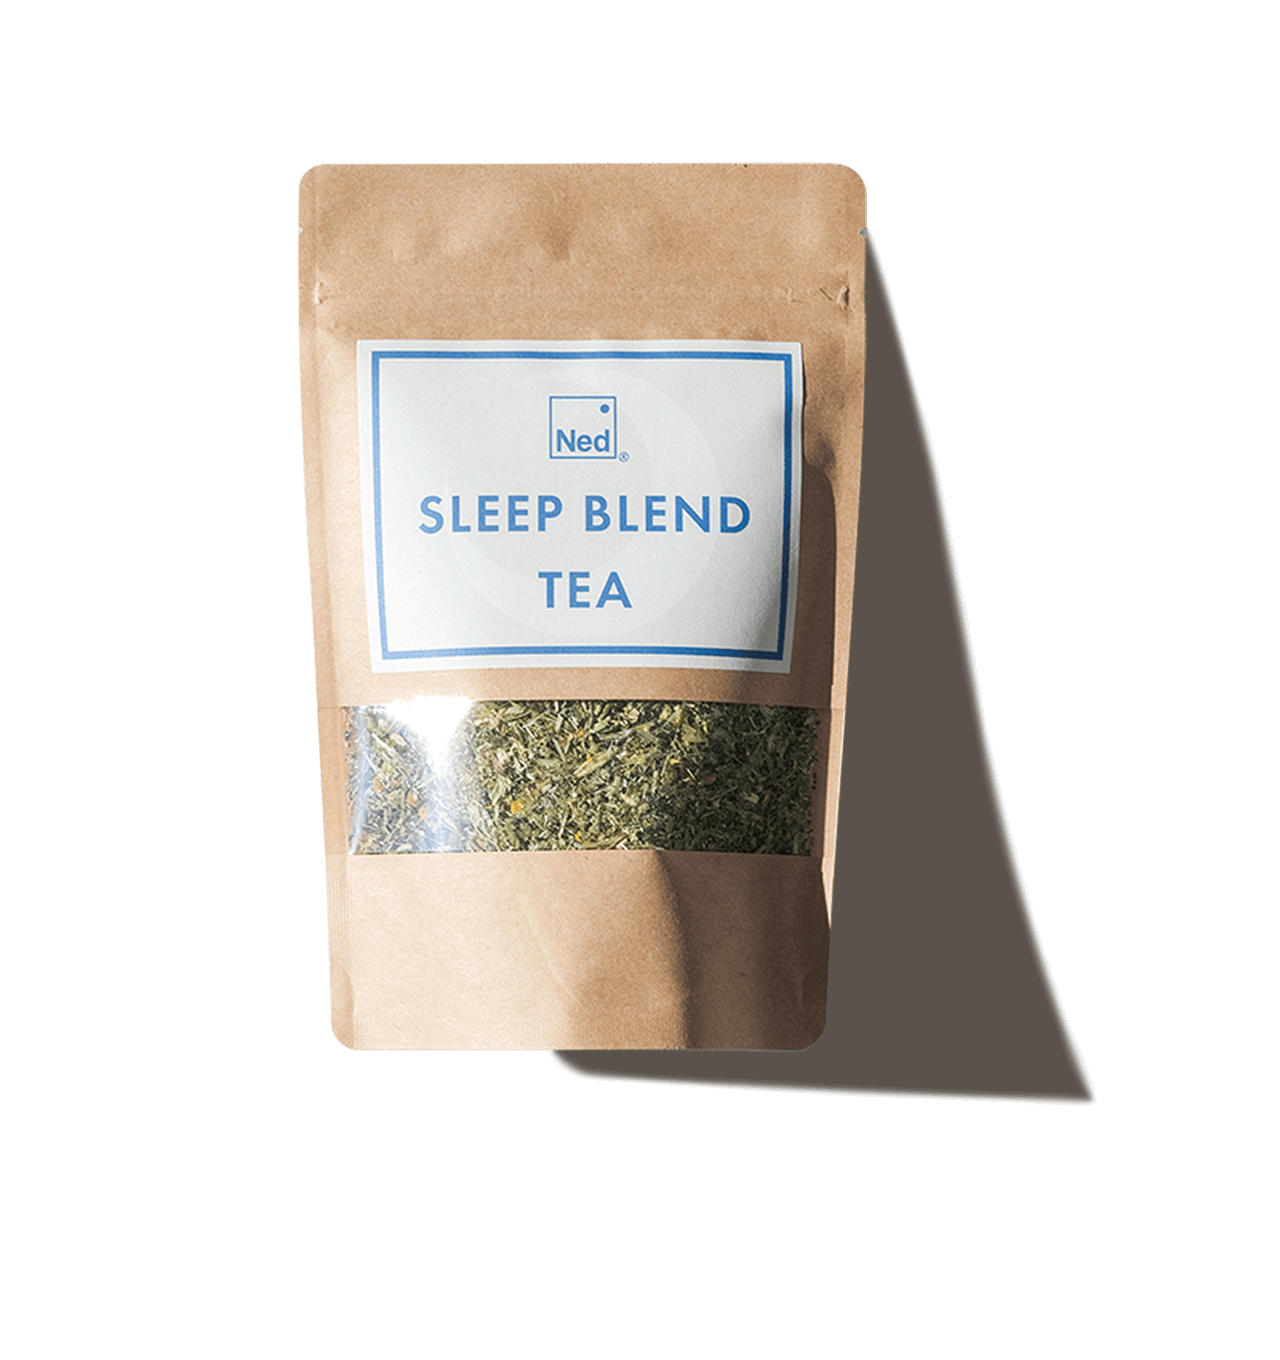 Sleep Blend Tea